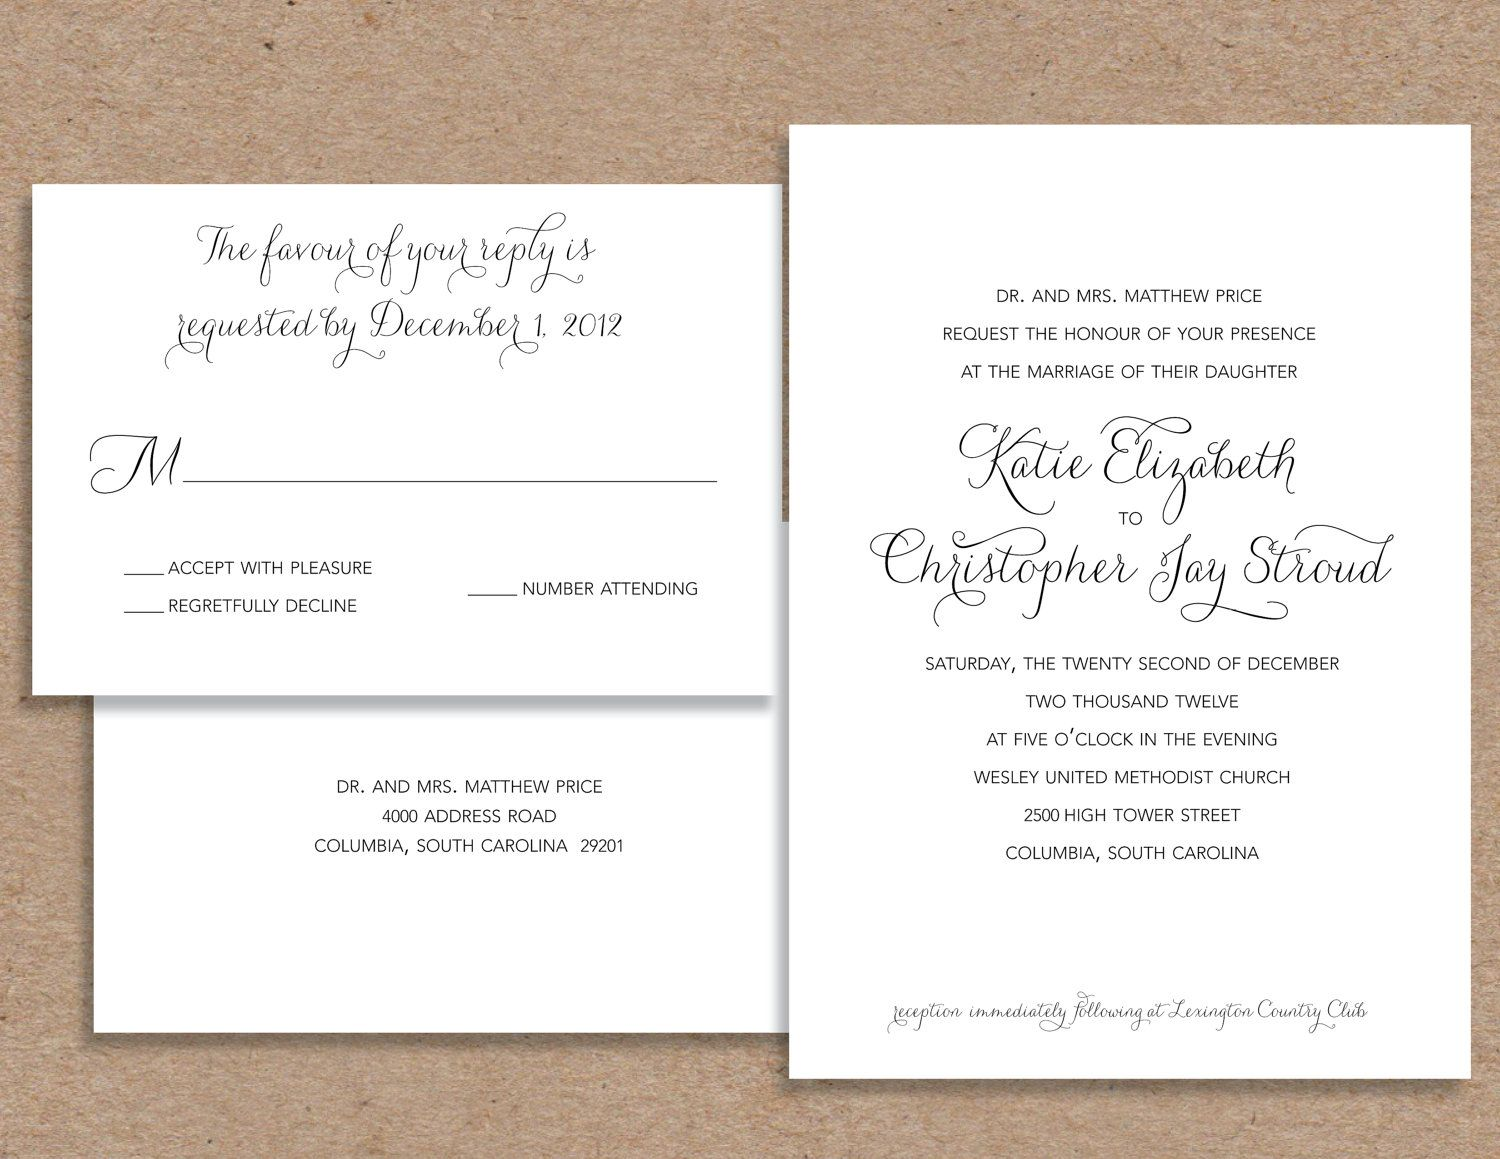 Wording For Invitations Wedding: Wording For Couple Wedding Invitation